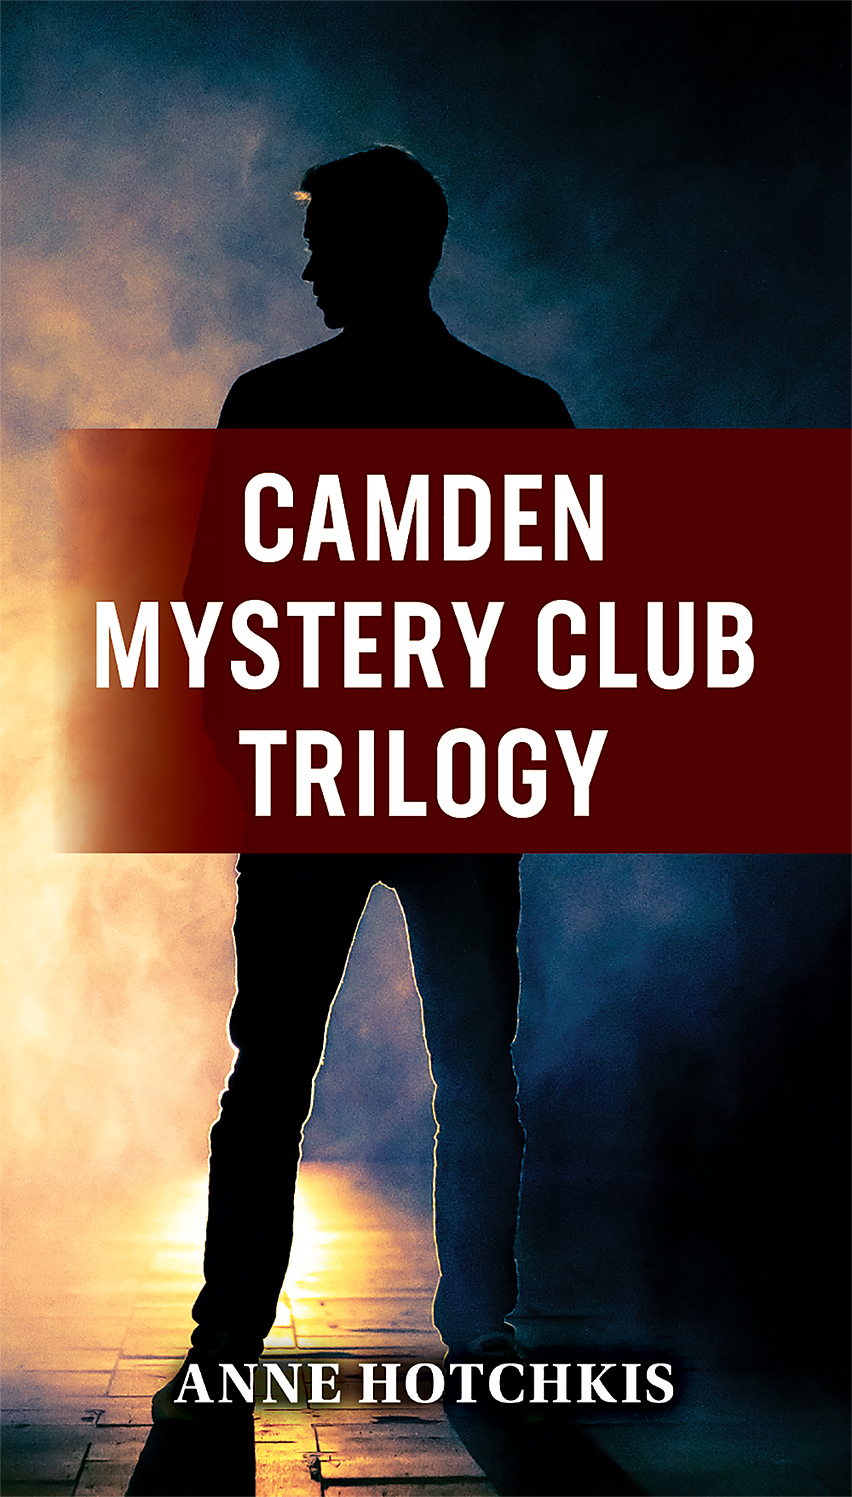 Camden Mystery Club Trilogy